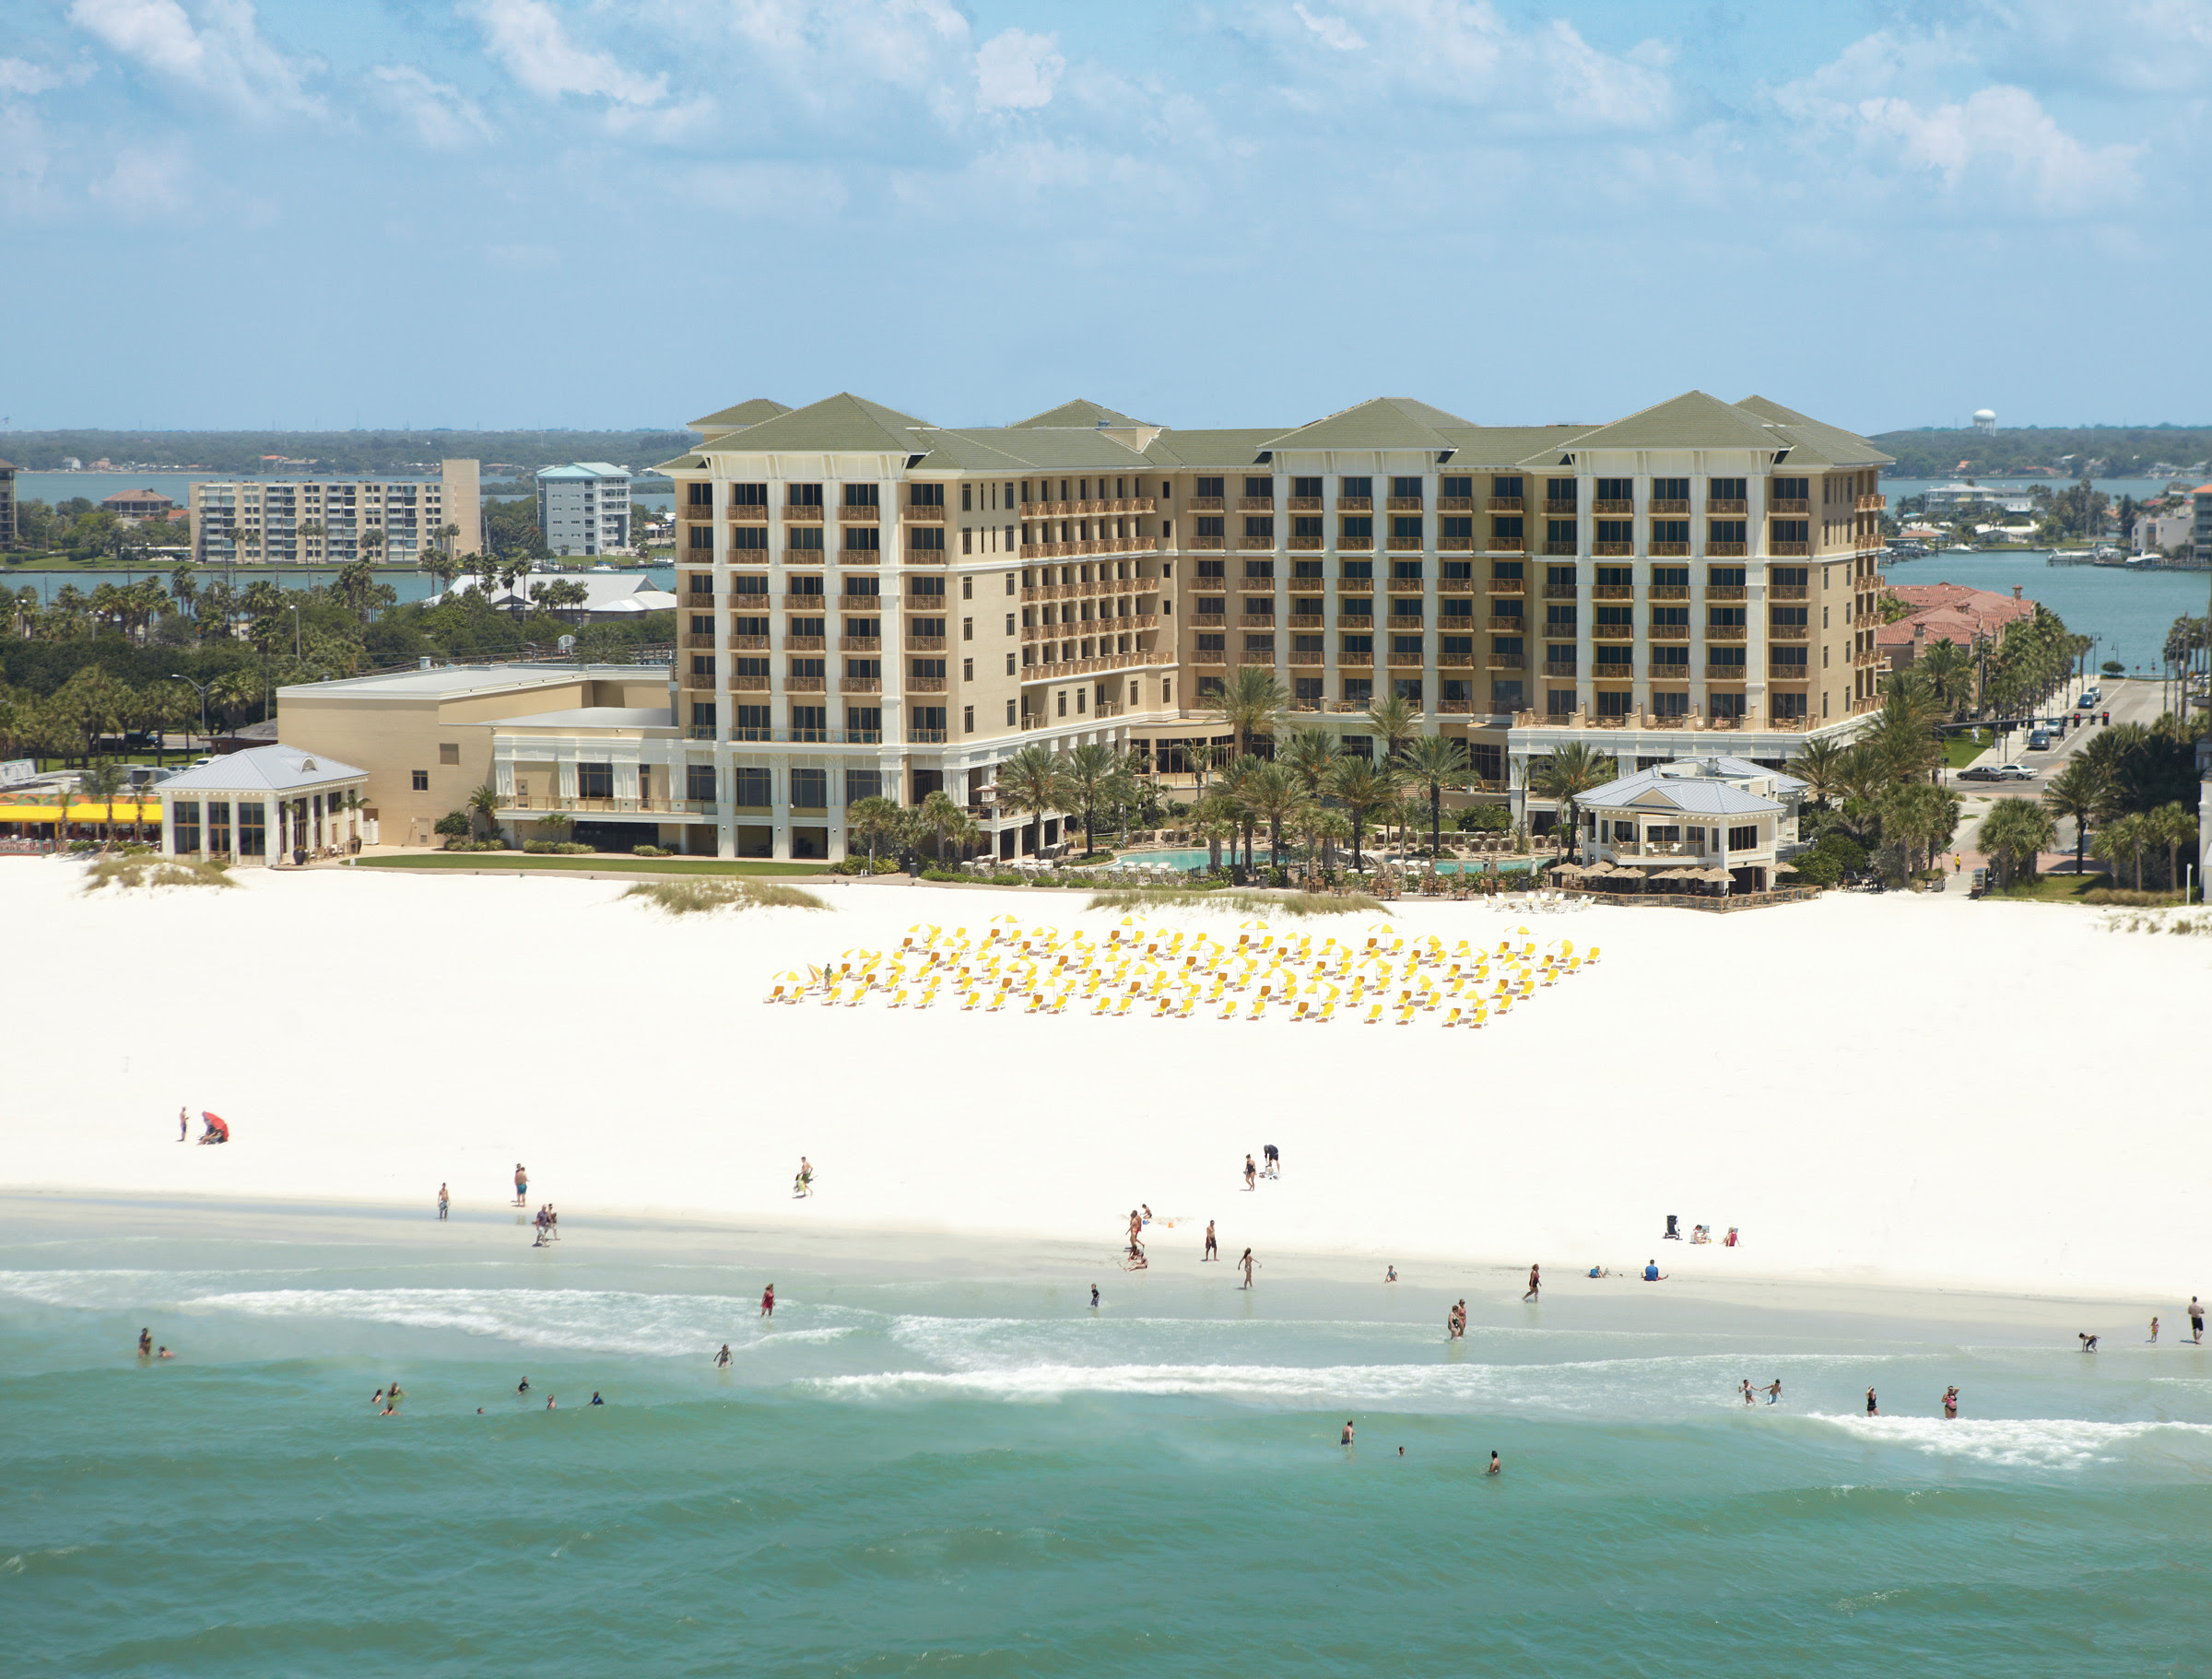 Sandpearl Resort  Clearwater Beach FL  Business Profile